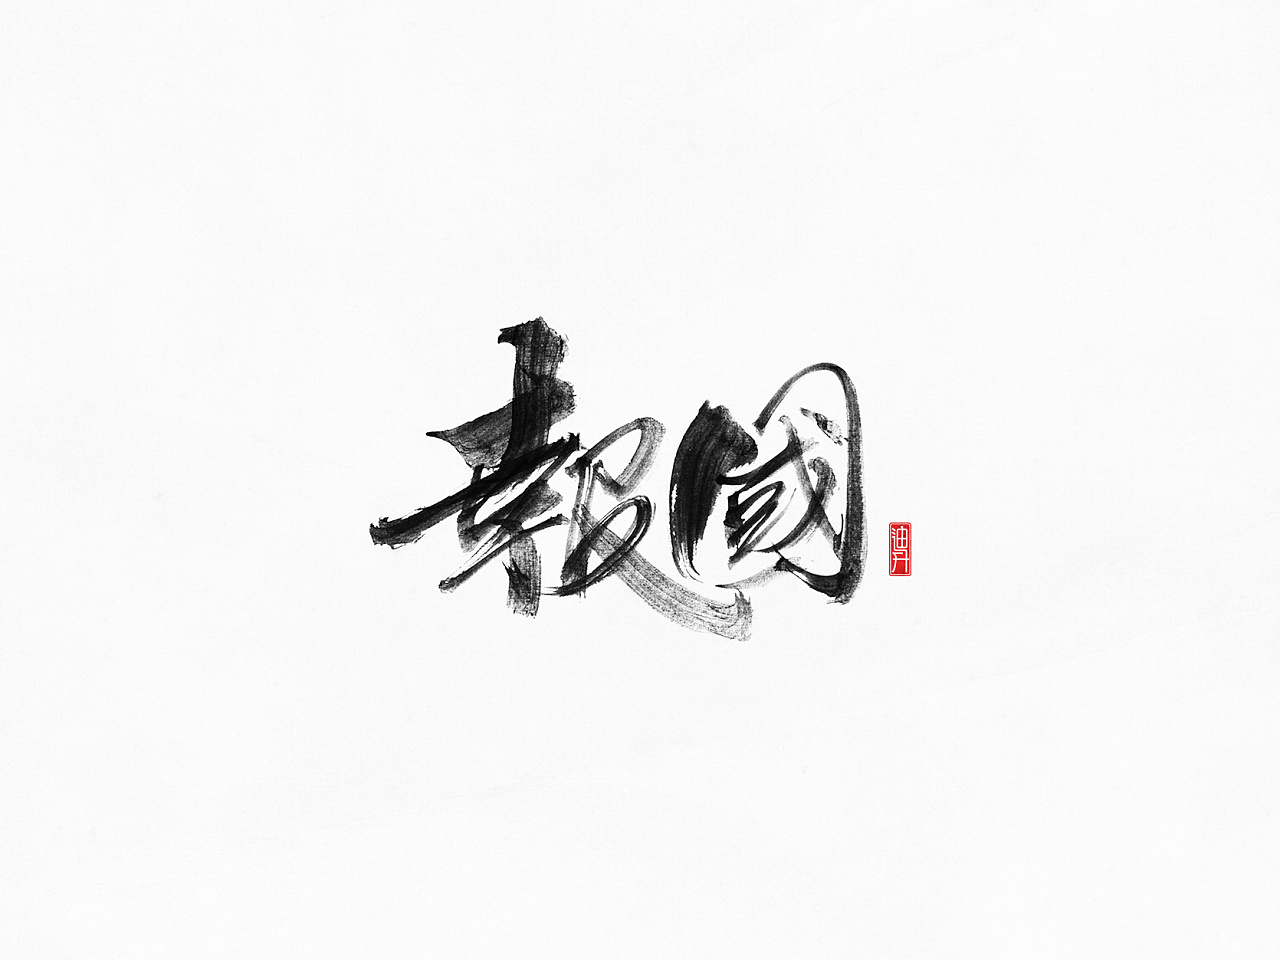 56P Chinese traditional calligraphy brush calligraphy font style appreciation #.680